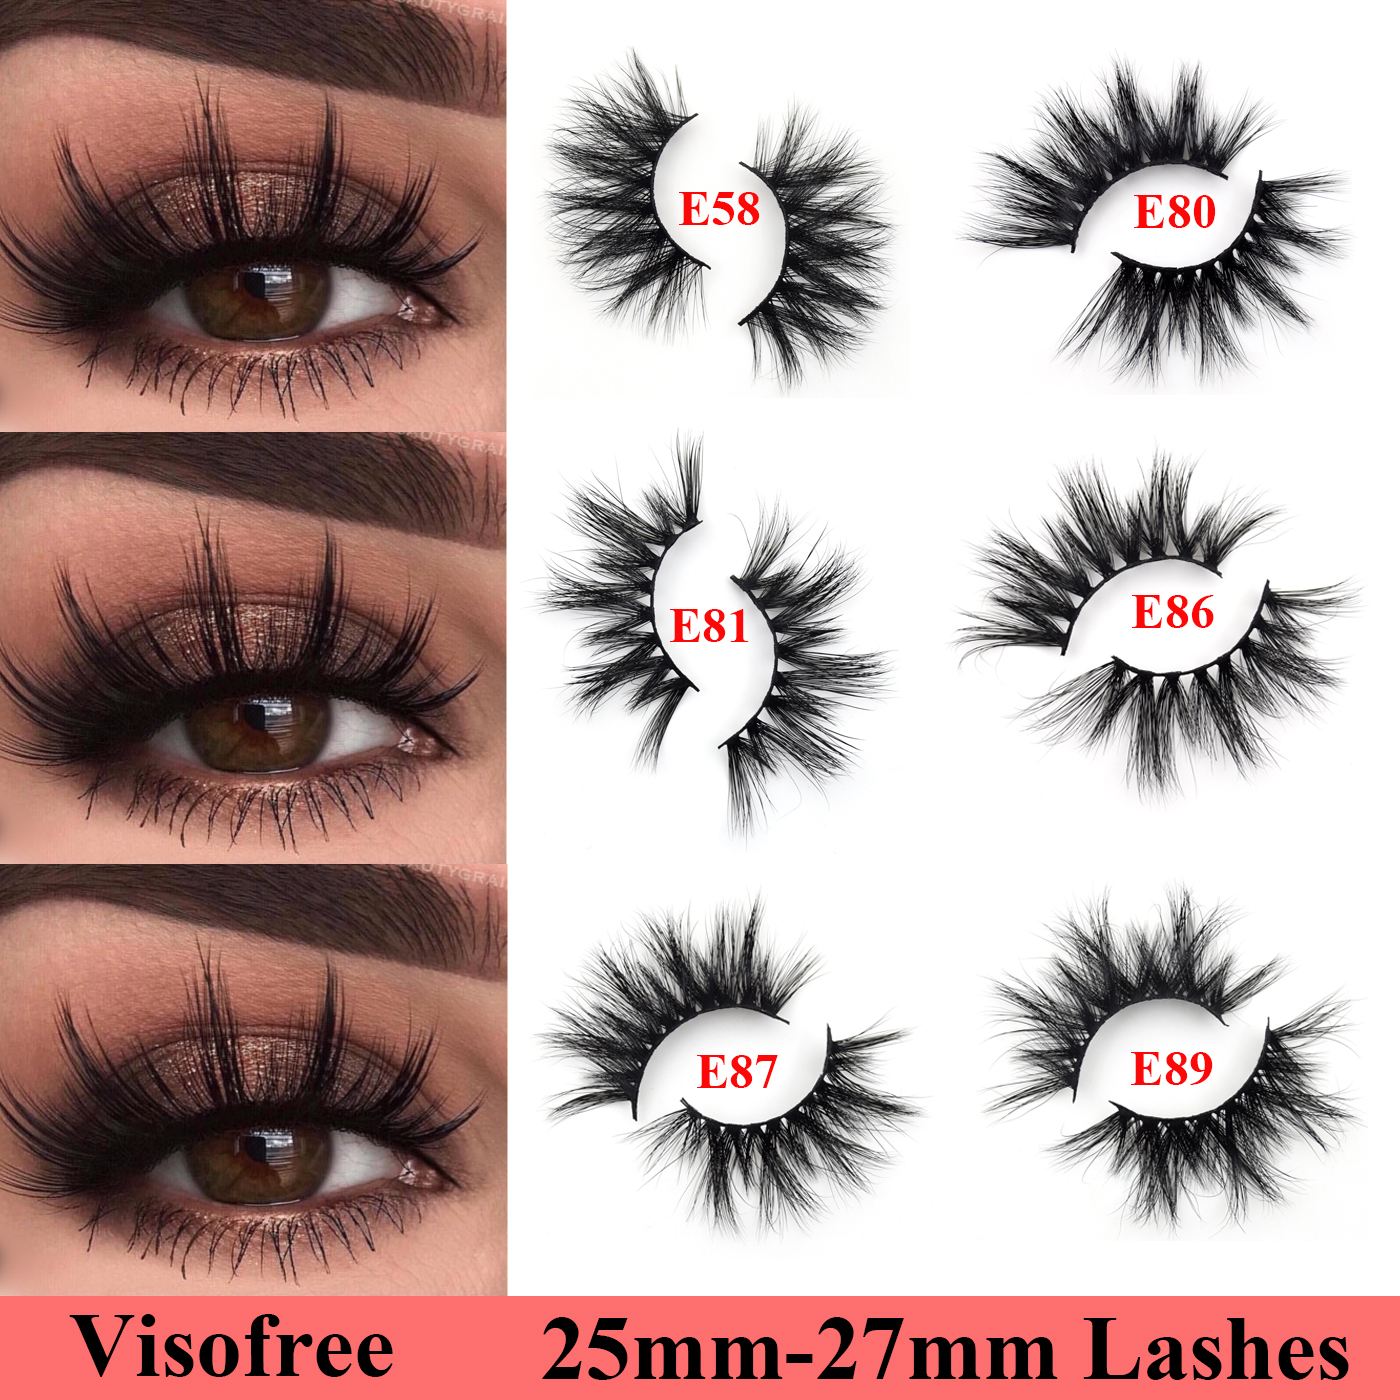 Visofree 25mm Lashes 3D Mink Hair False Eyelashes Thick Extra Long Mink Eyelashes 27mm Eye Lashes Makeup Beauty Extension Tools